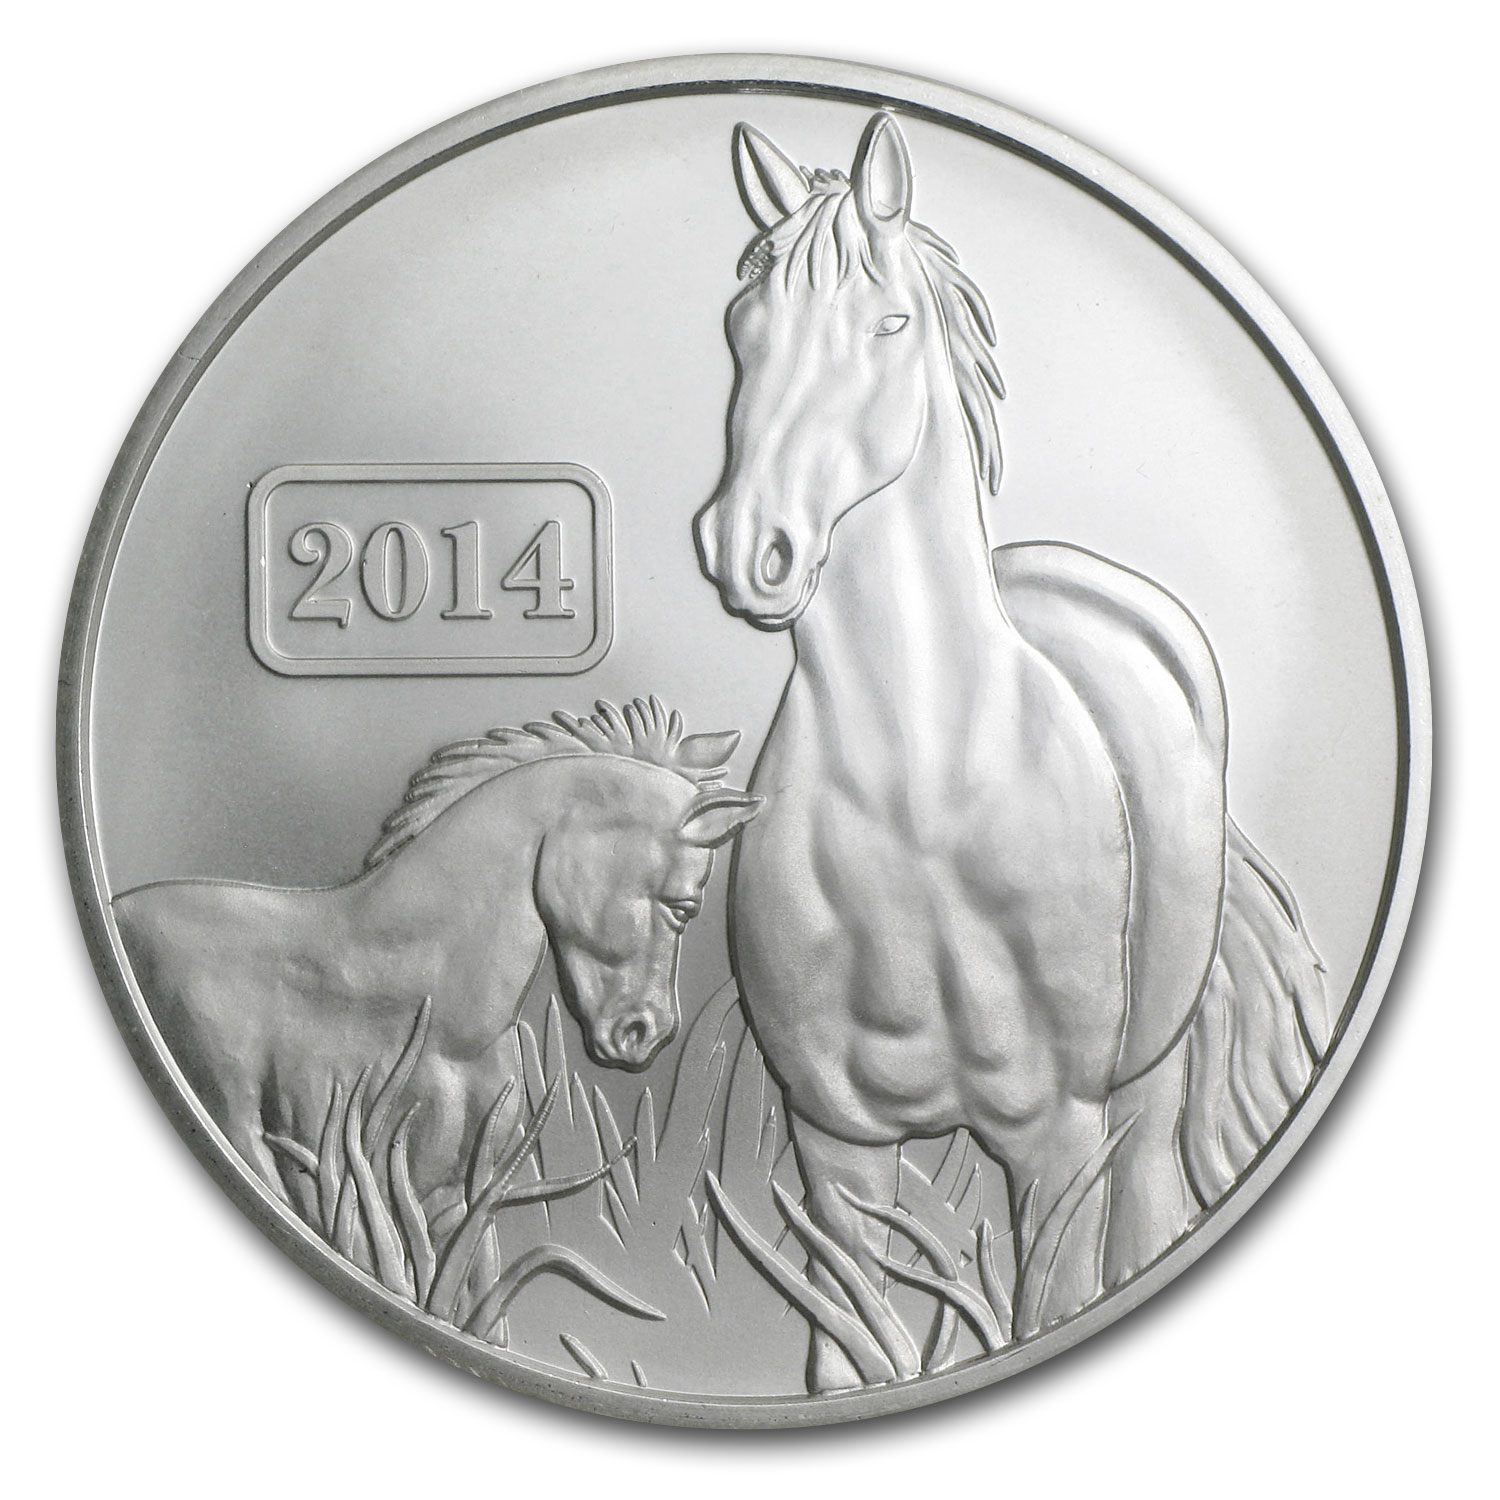 2014 Tokelau 1 oz Silver Lunar Series Year of the Horse BU